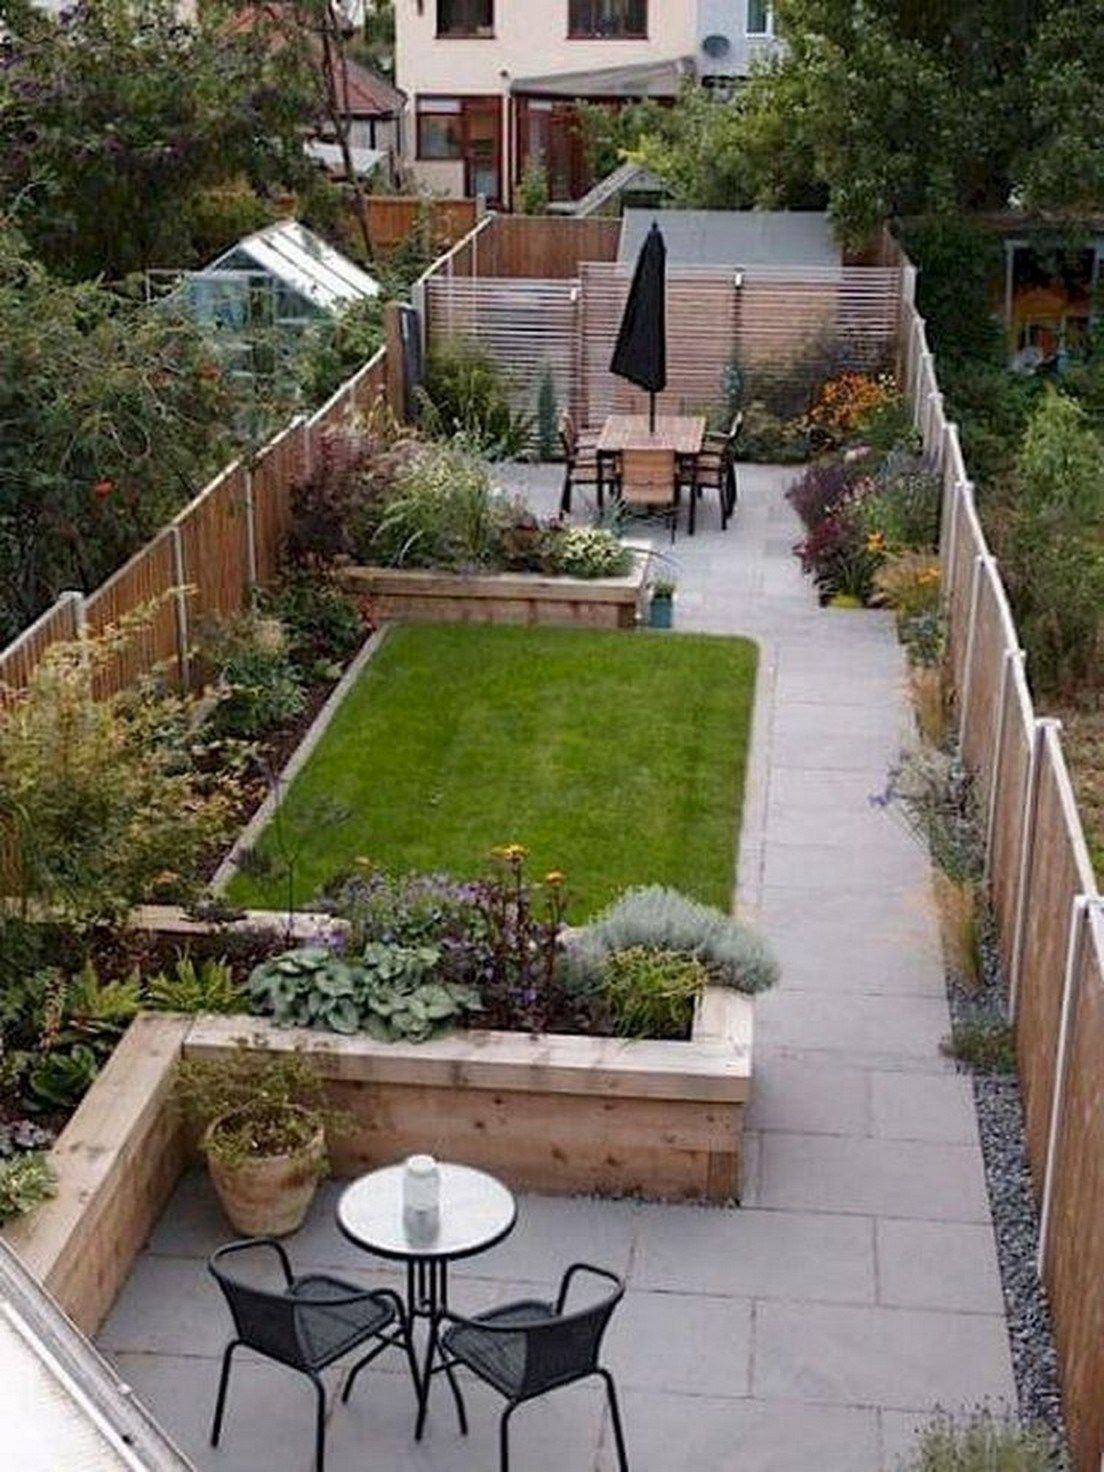 44 Great Ideas For Backyard Landscaping On A Budget For ...